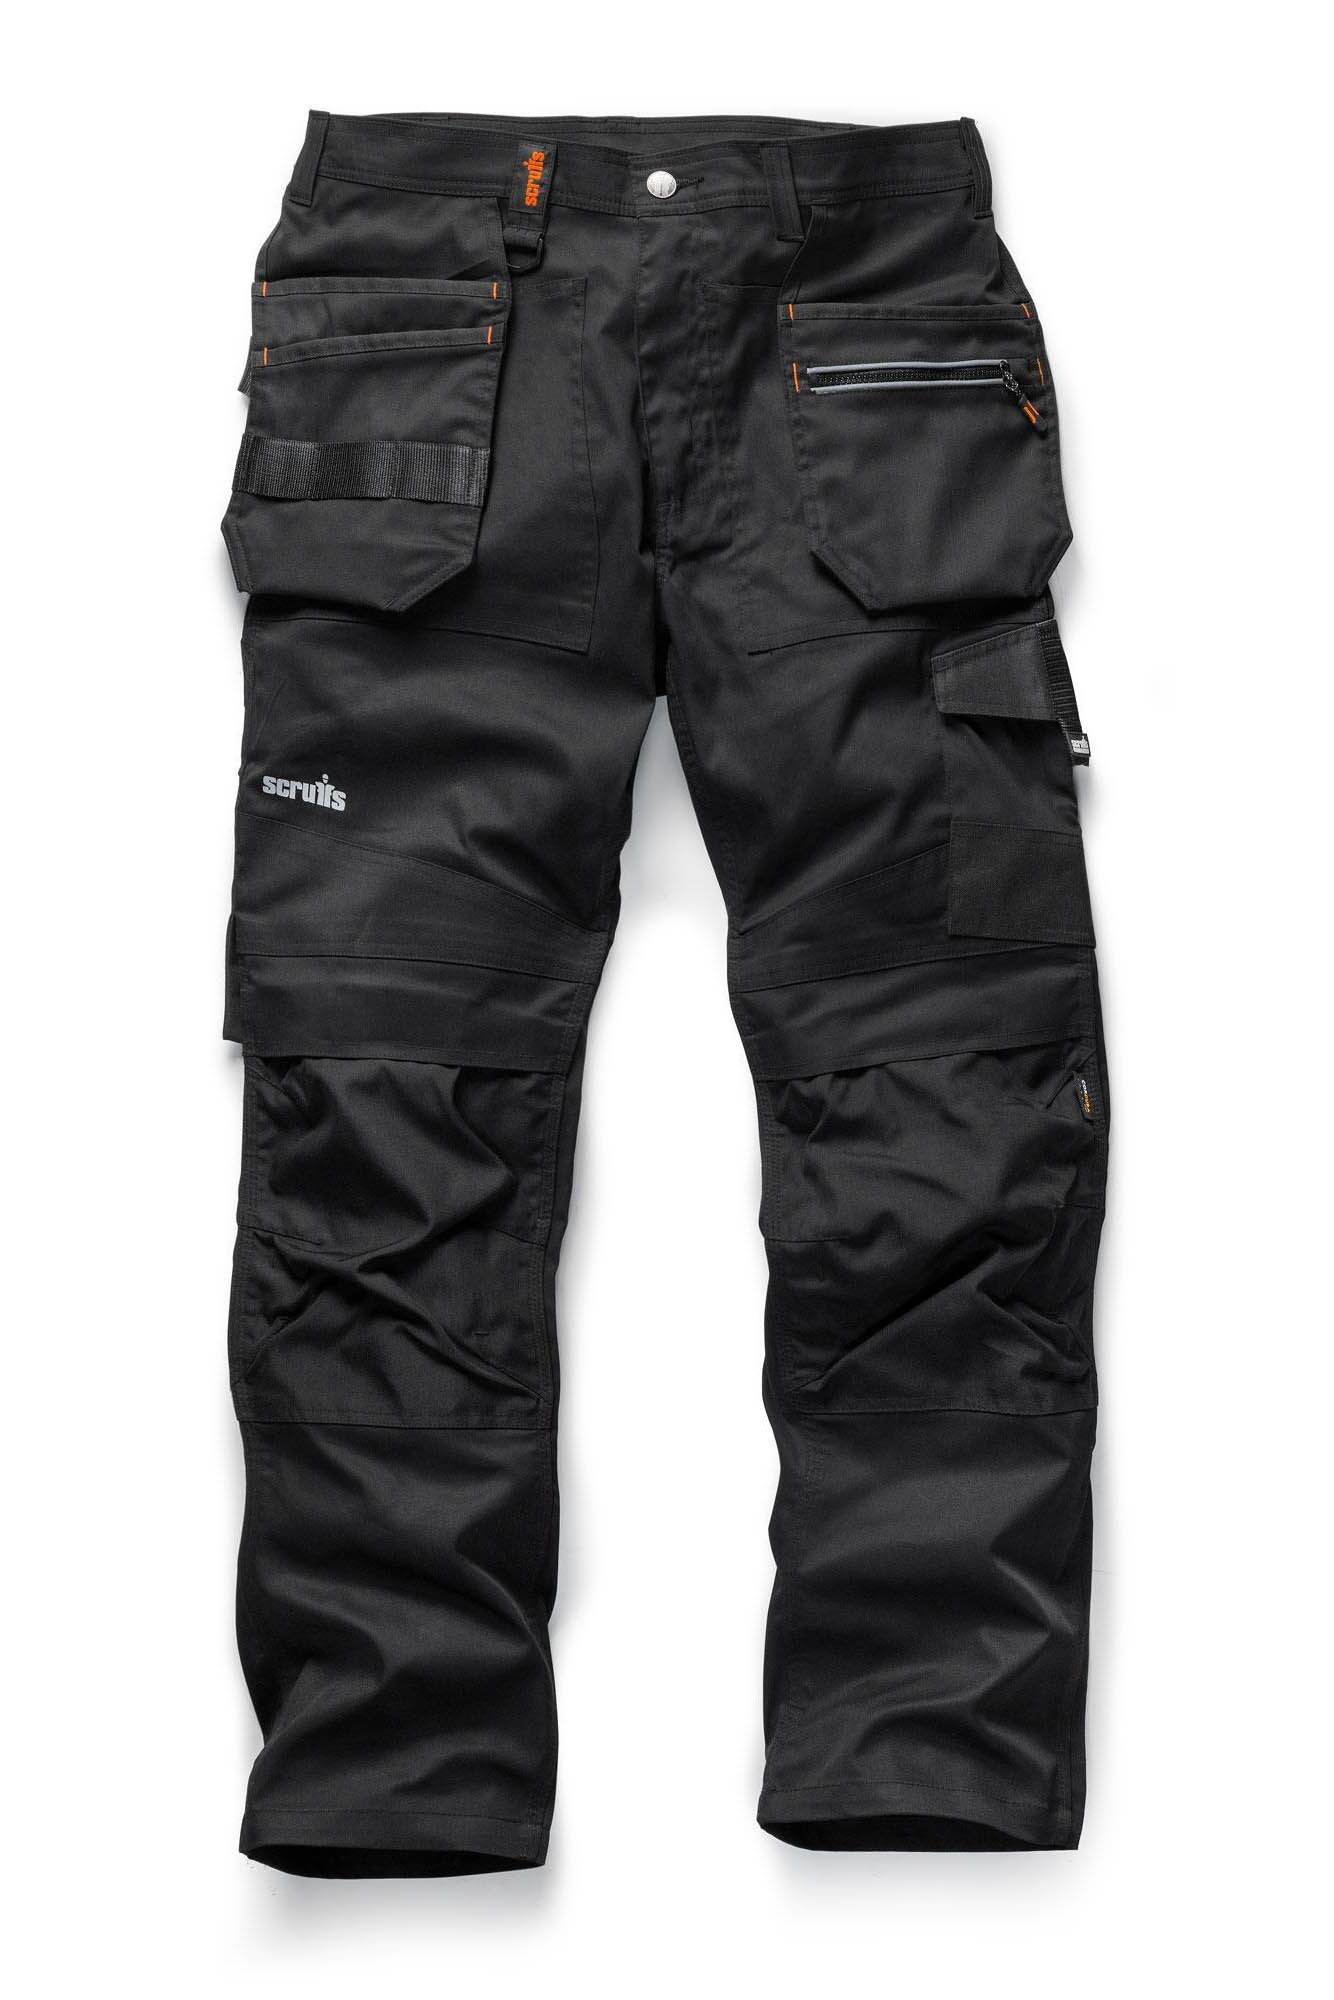 Scruffs Trade Flex Holster Trousers Black